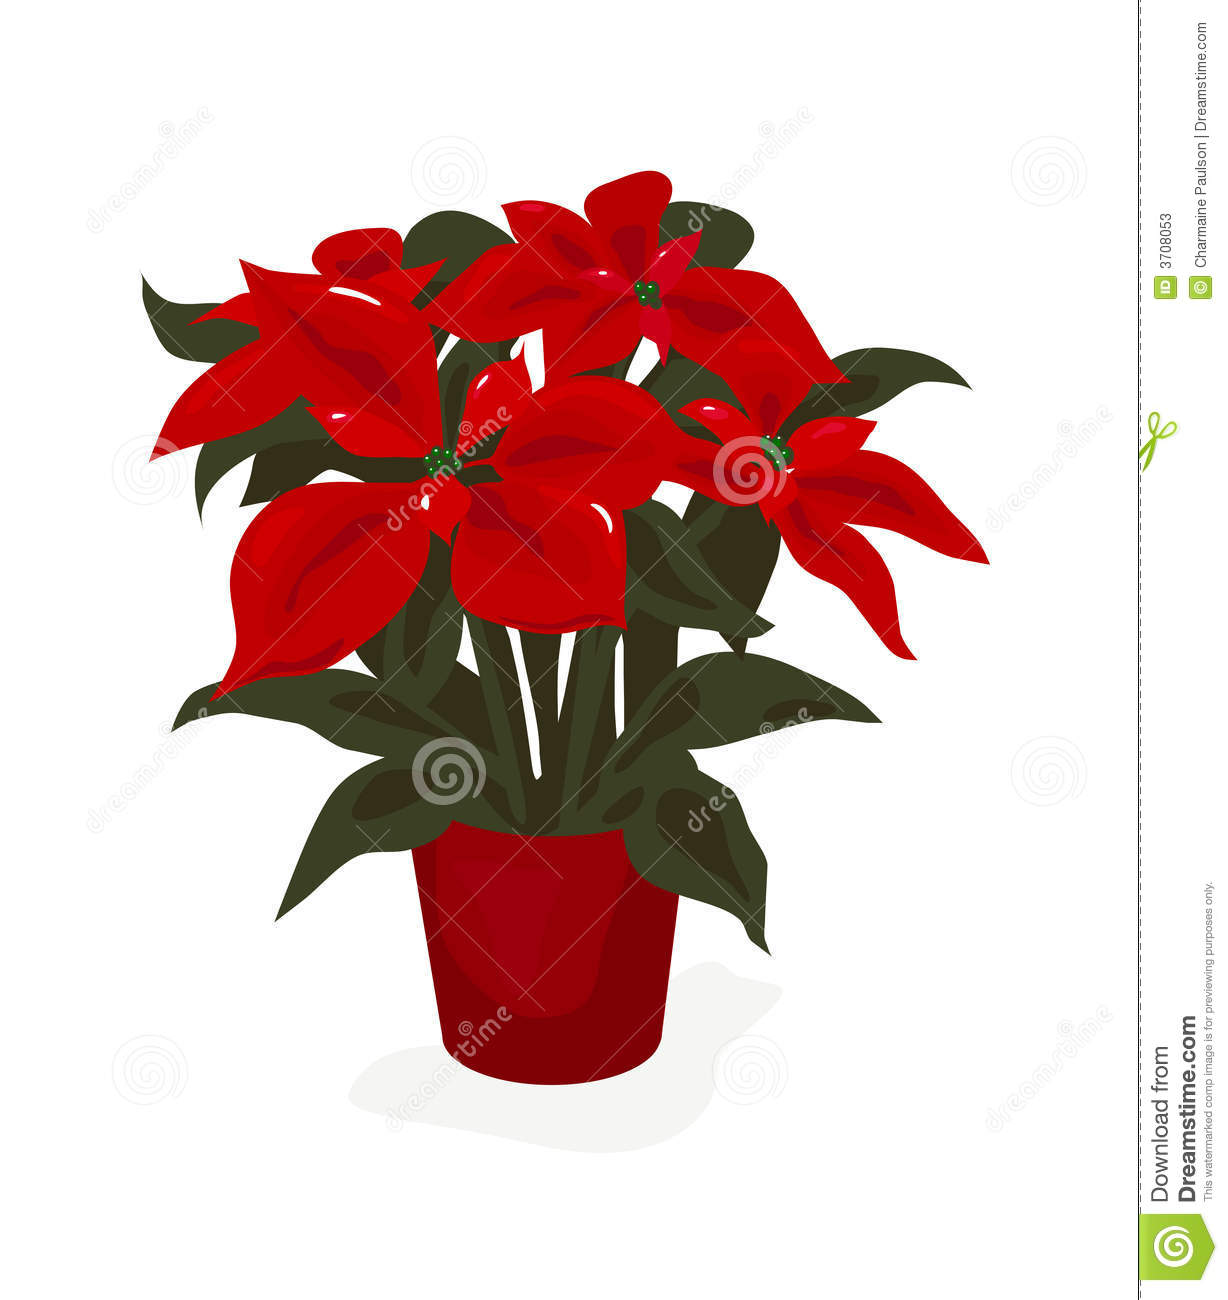 Beautiful Red Poinsettia Potted Plant For The Christmas Season